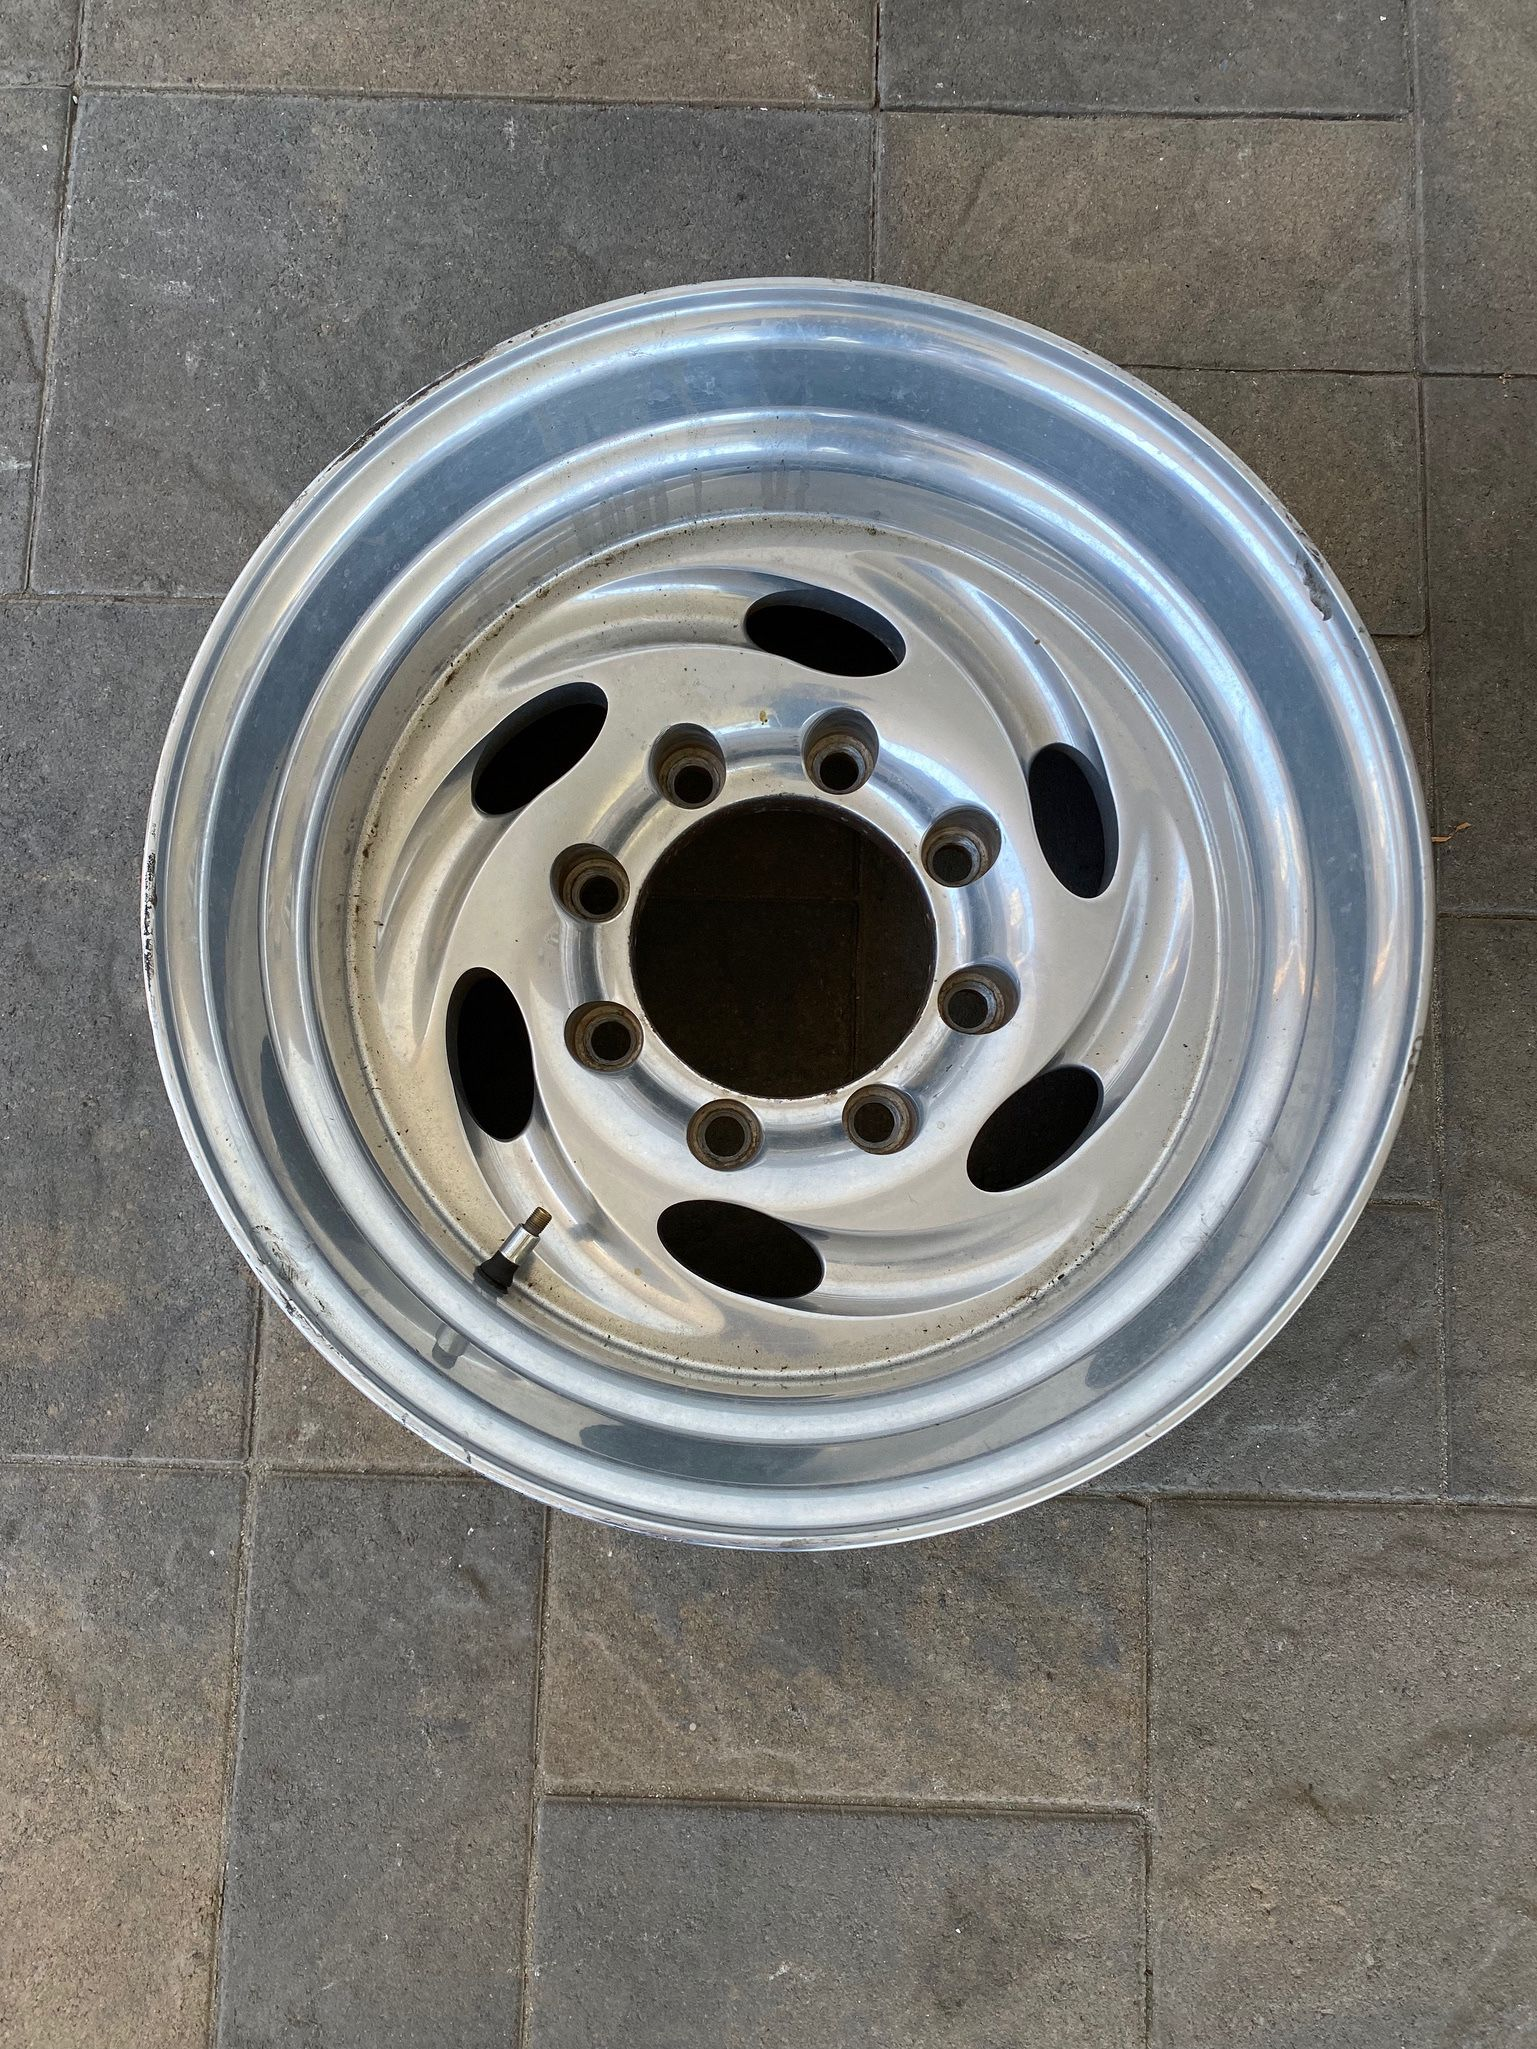 """Weld Typhoon 16.5 Aluminum Alloy Magnesium Truck Rim 16.5"""" X 12 8 X 6.5 Ford Chevy Dodge Will Fit All 90's Or Before"""